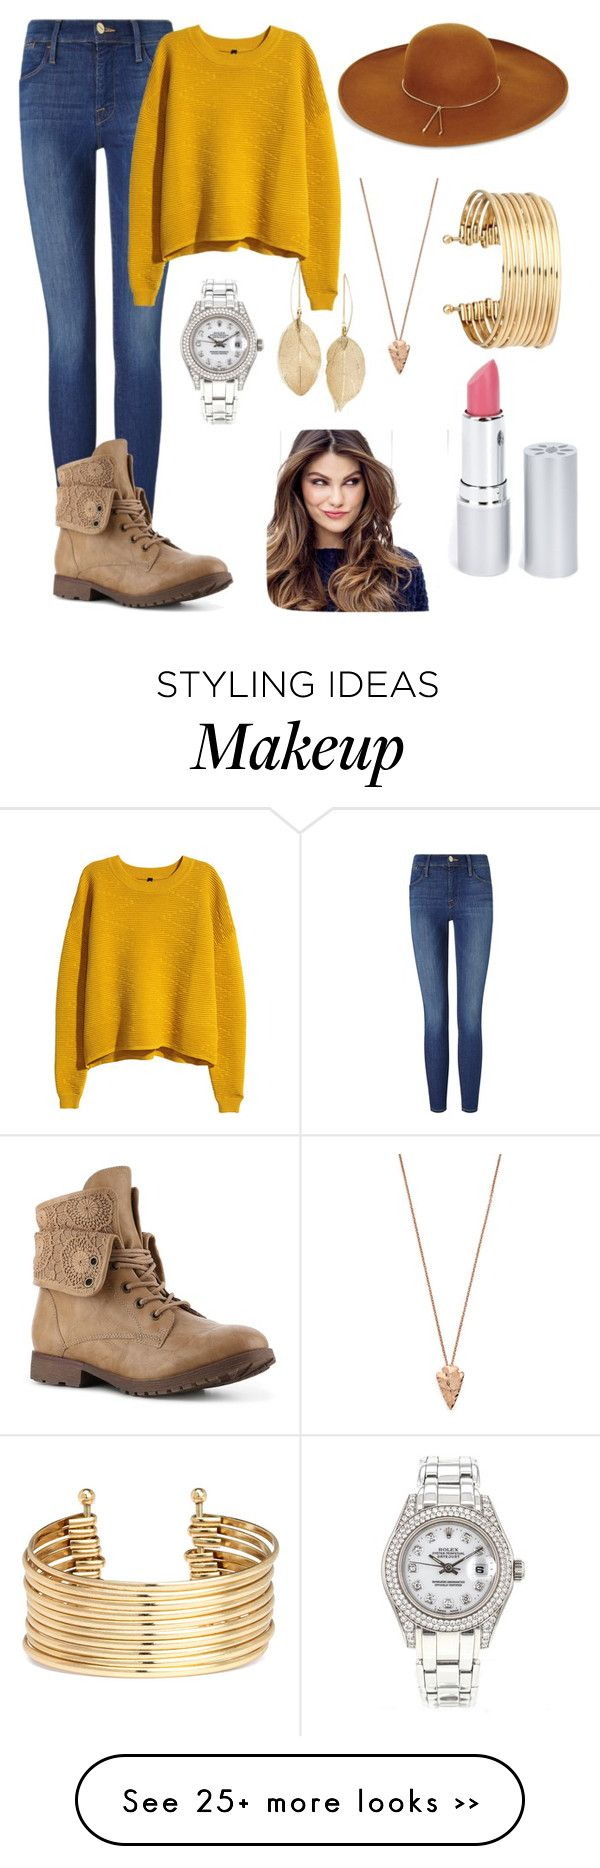 """I know it's mustard but it's cute"" by emilystoneman on Polyvore featuring Frame Denim, H&M, BCBGMAXAZRIA, Rolex, Pamela Love, HoneyBee Gardens, ULTA and Lulu*s:"